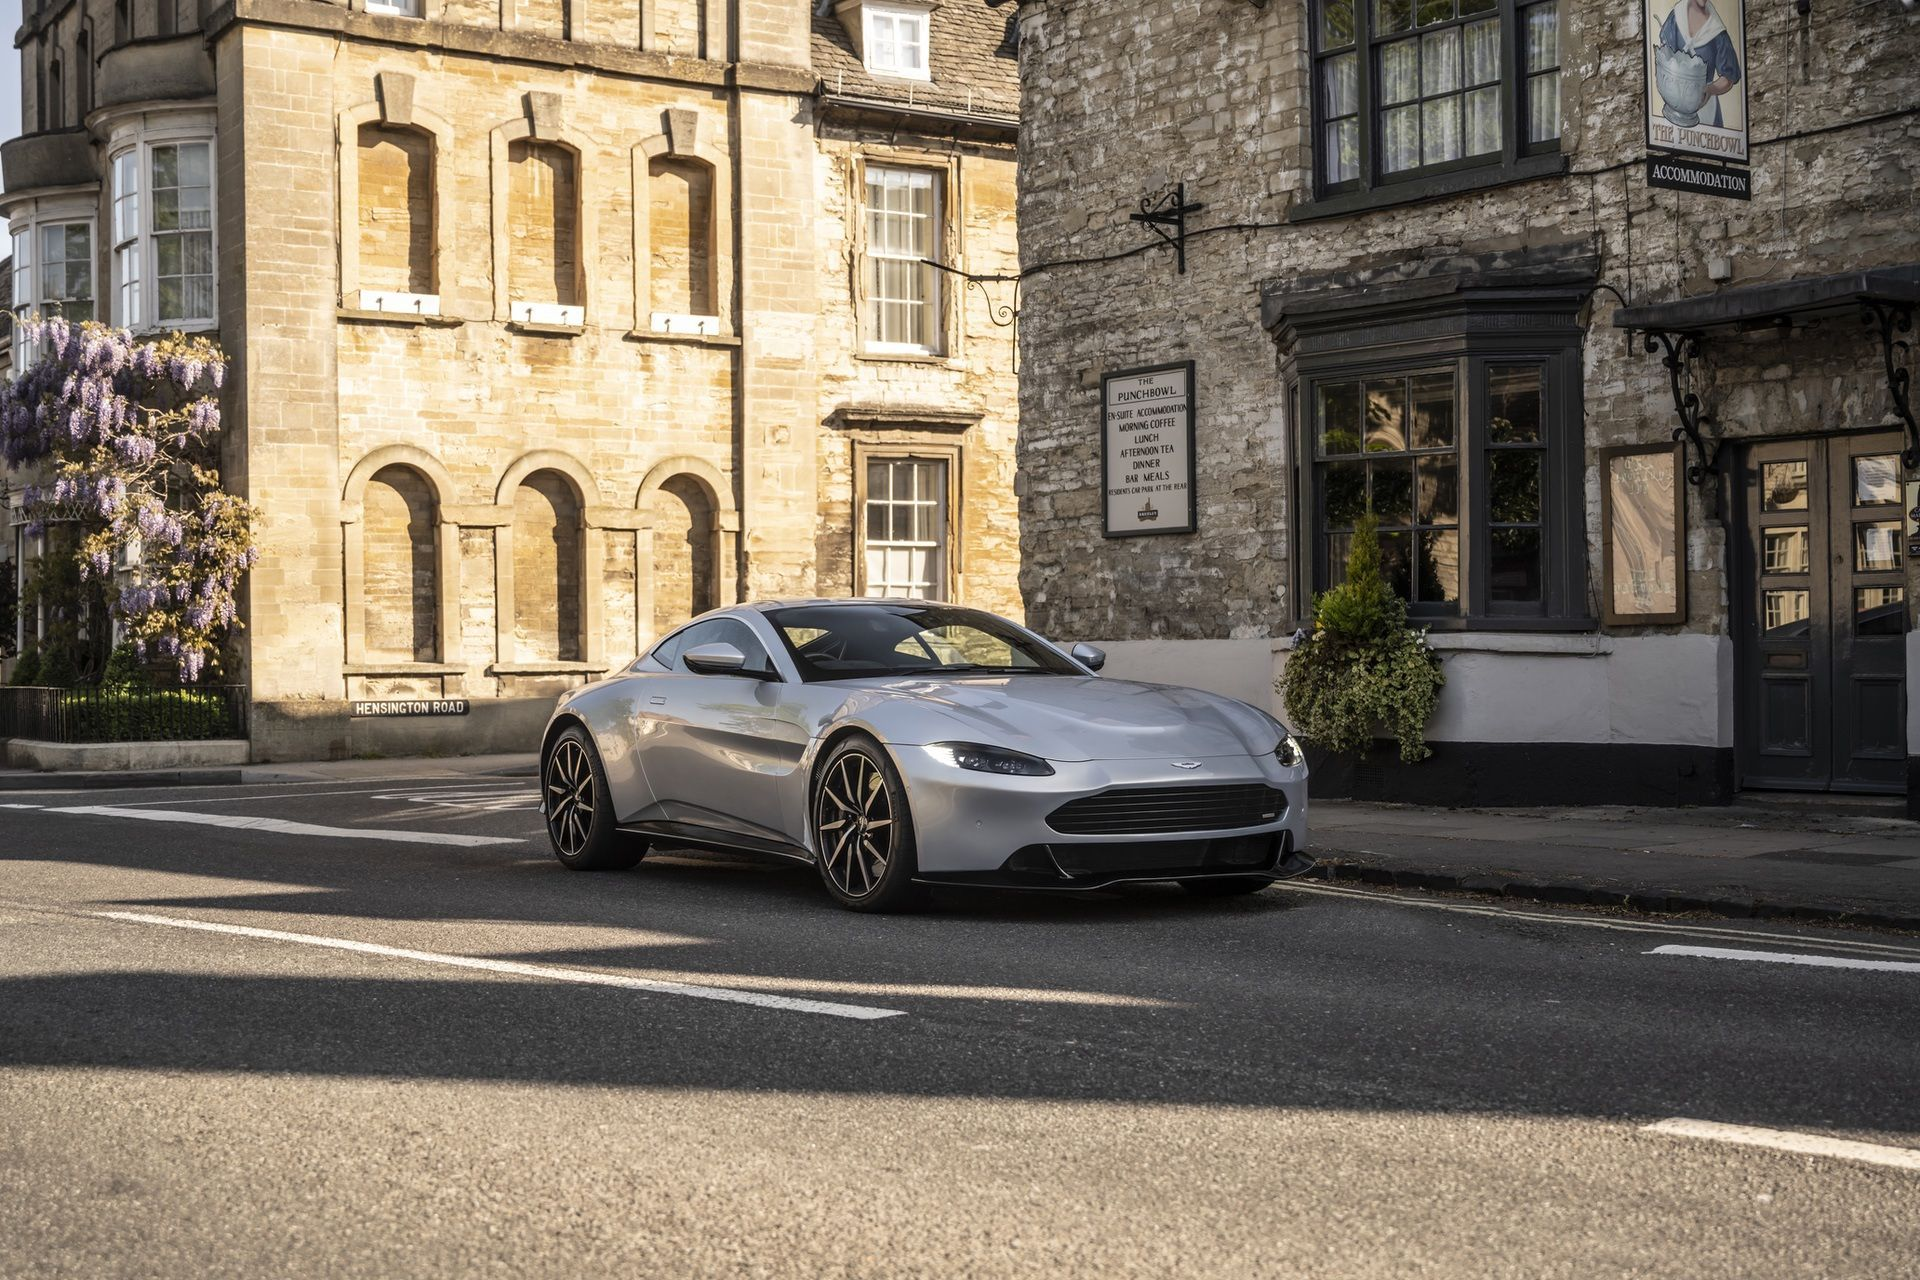 9.-Revenant-Automotive-Aston-Martin-Vantage-bumper-on-British-side-street